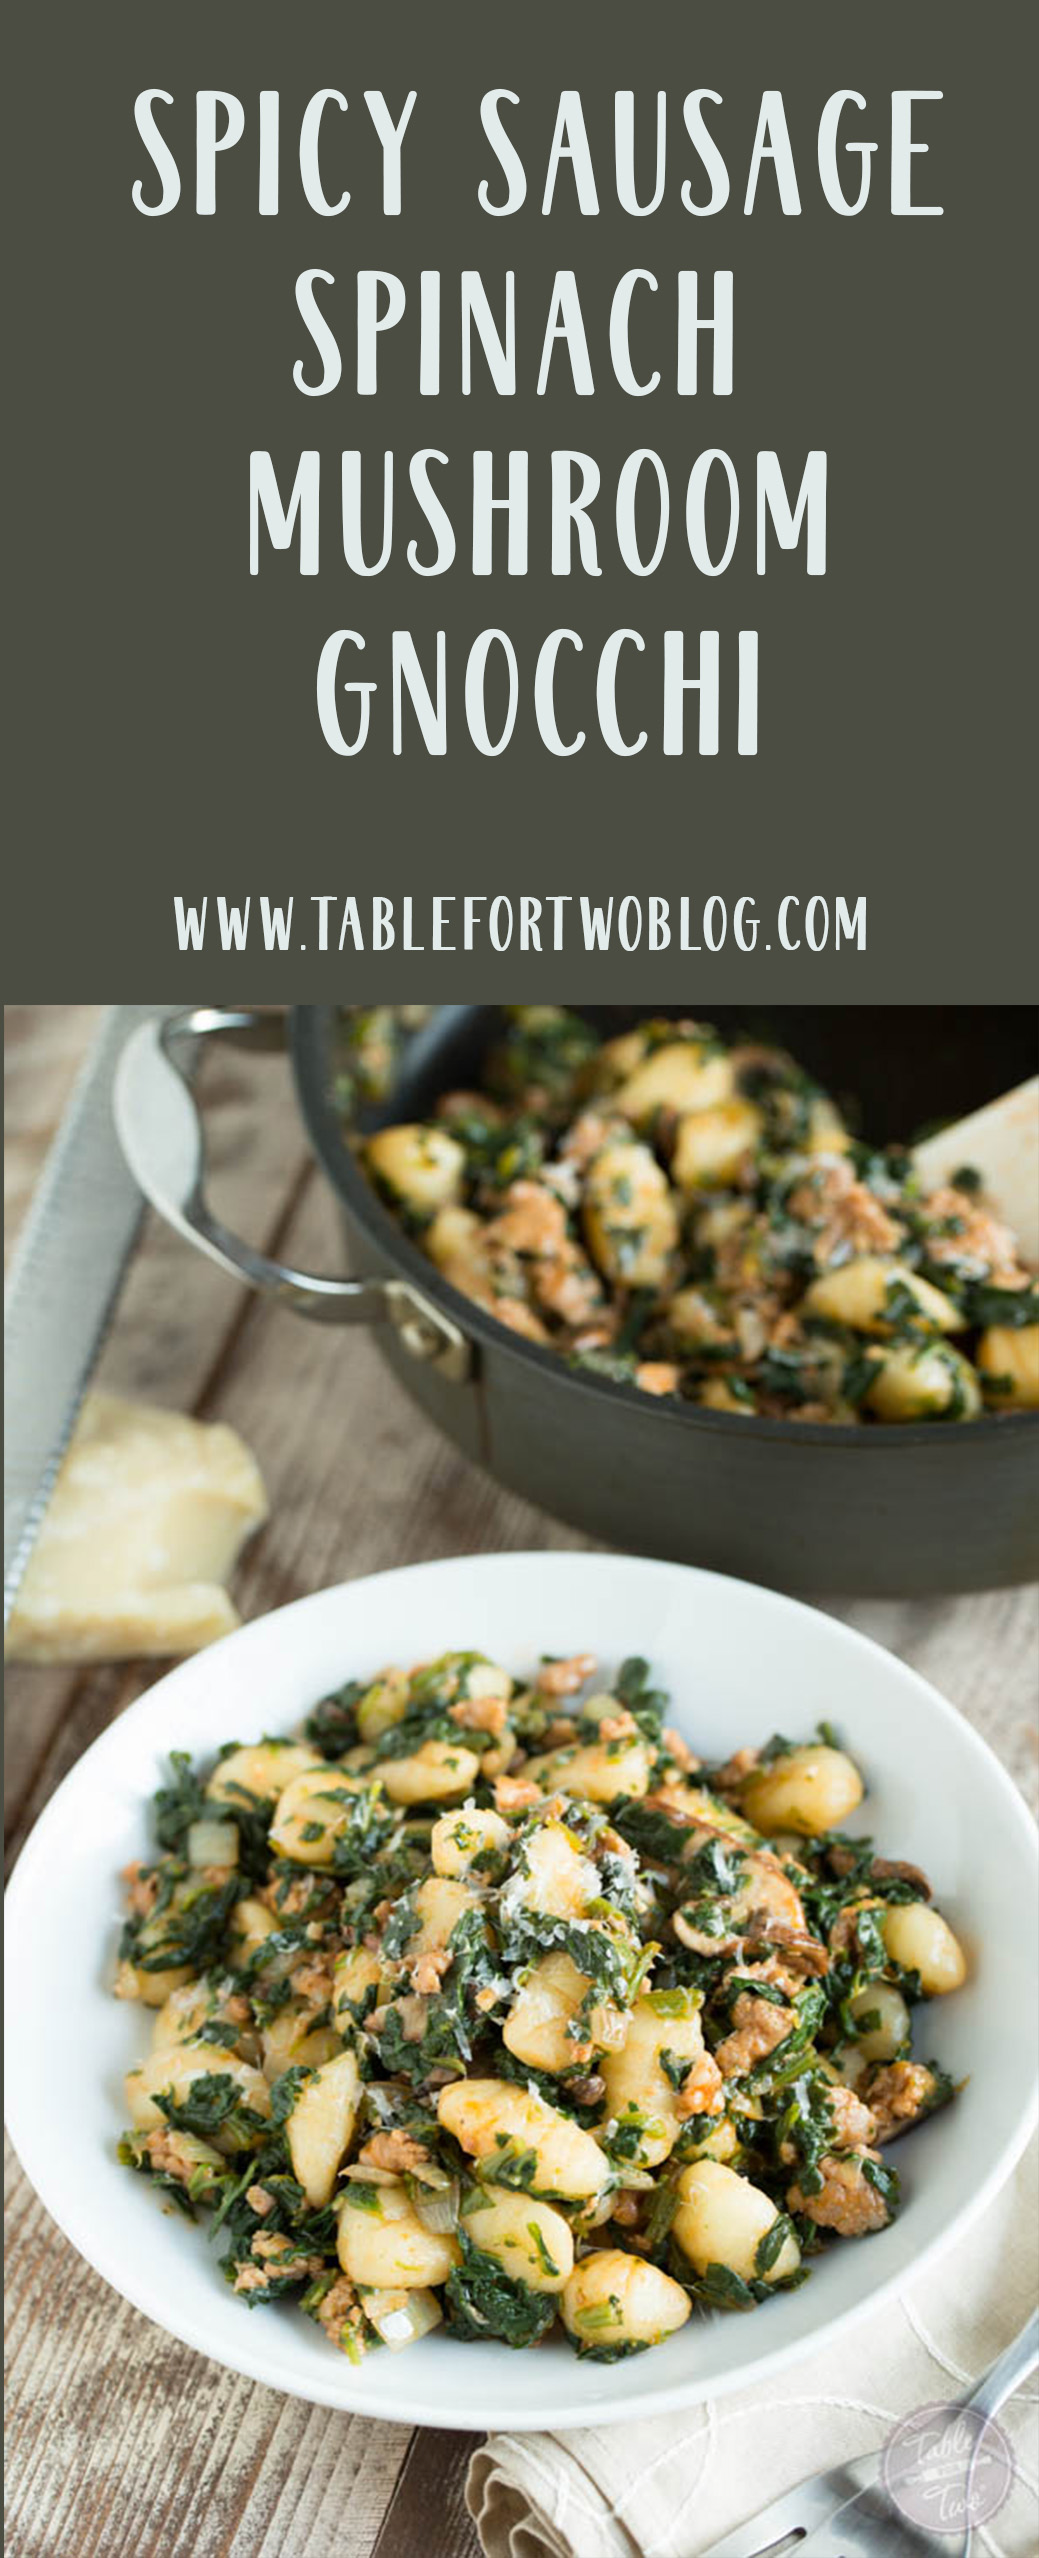 This 15-minute spicy sausage, spinach, and mushroom gnocchi is SO flavorful and incredibly easy to whip up that you'll want it on your dinner table multiple times a week! #gnocchi #easydinner #dinneridea #dinnerrecipe #pastarecipe #spicysausage